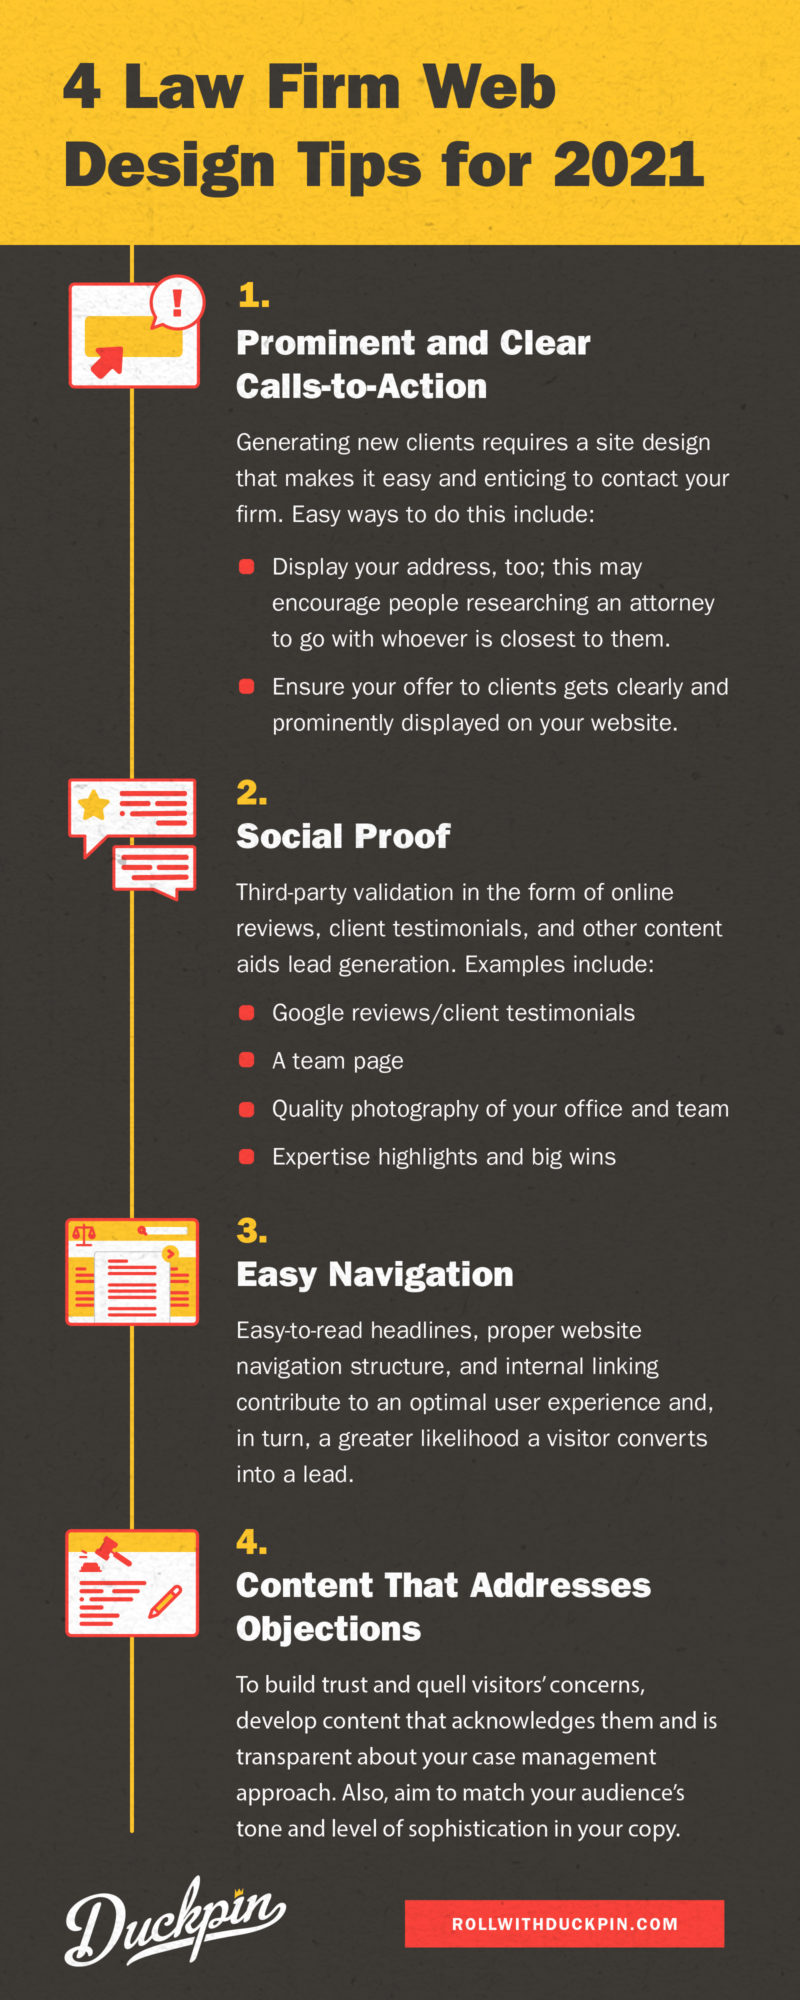 DUCK_Marketing_Law_Infographic-plaza